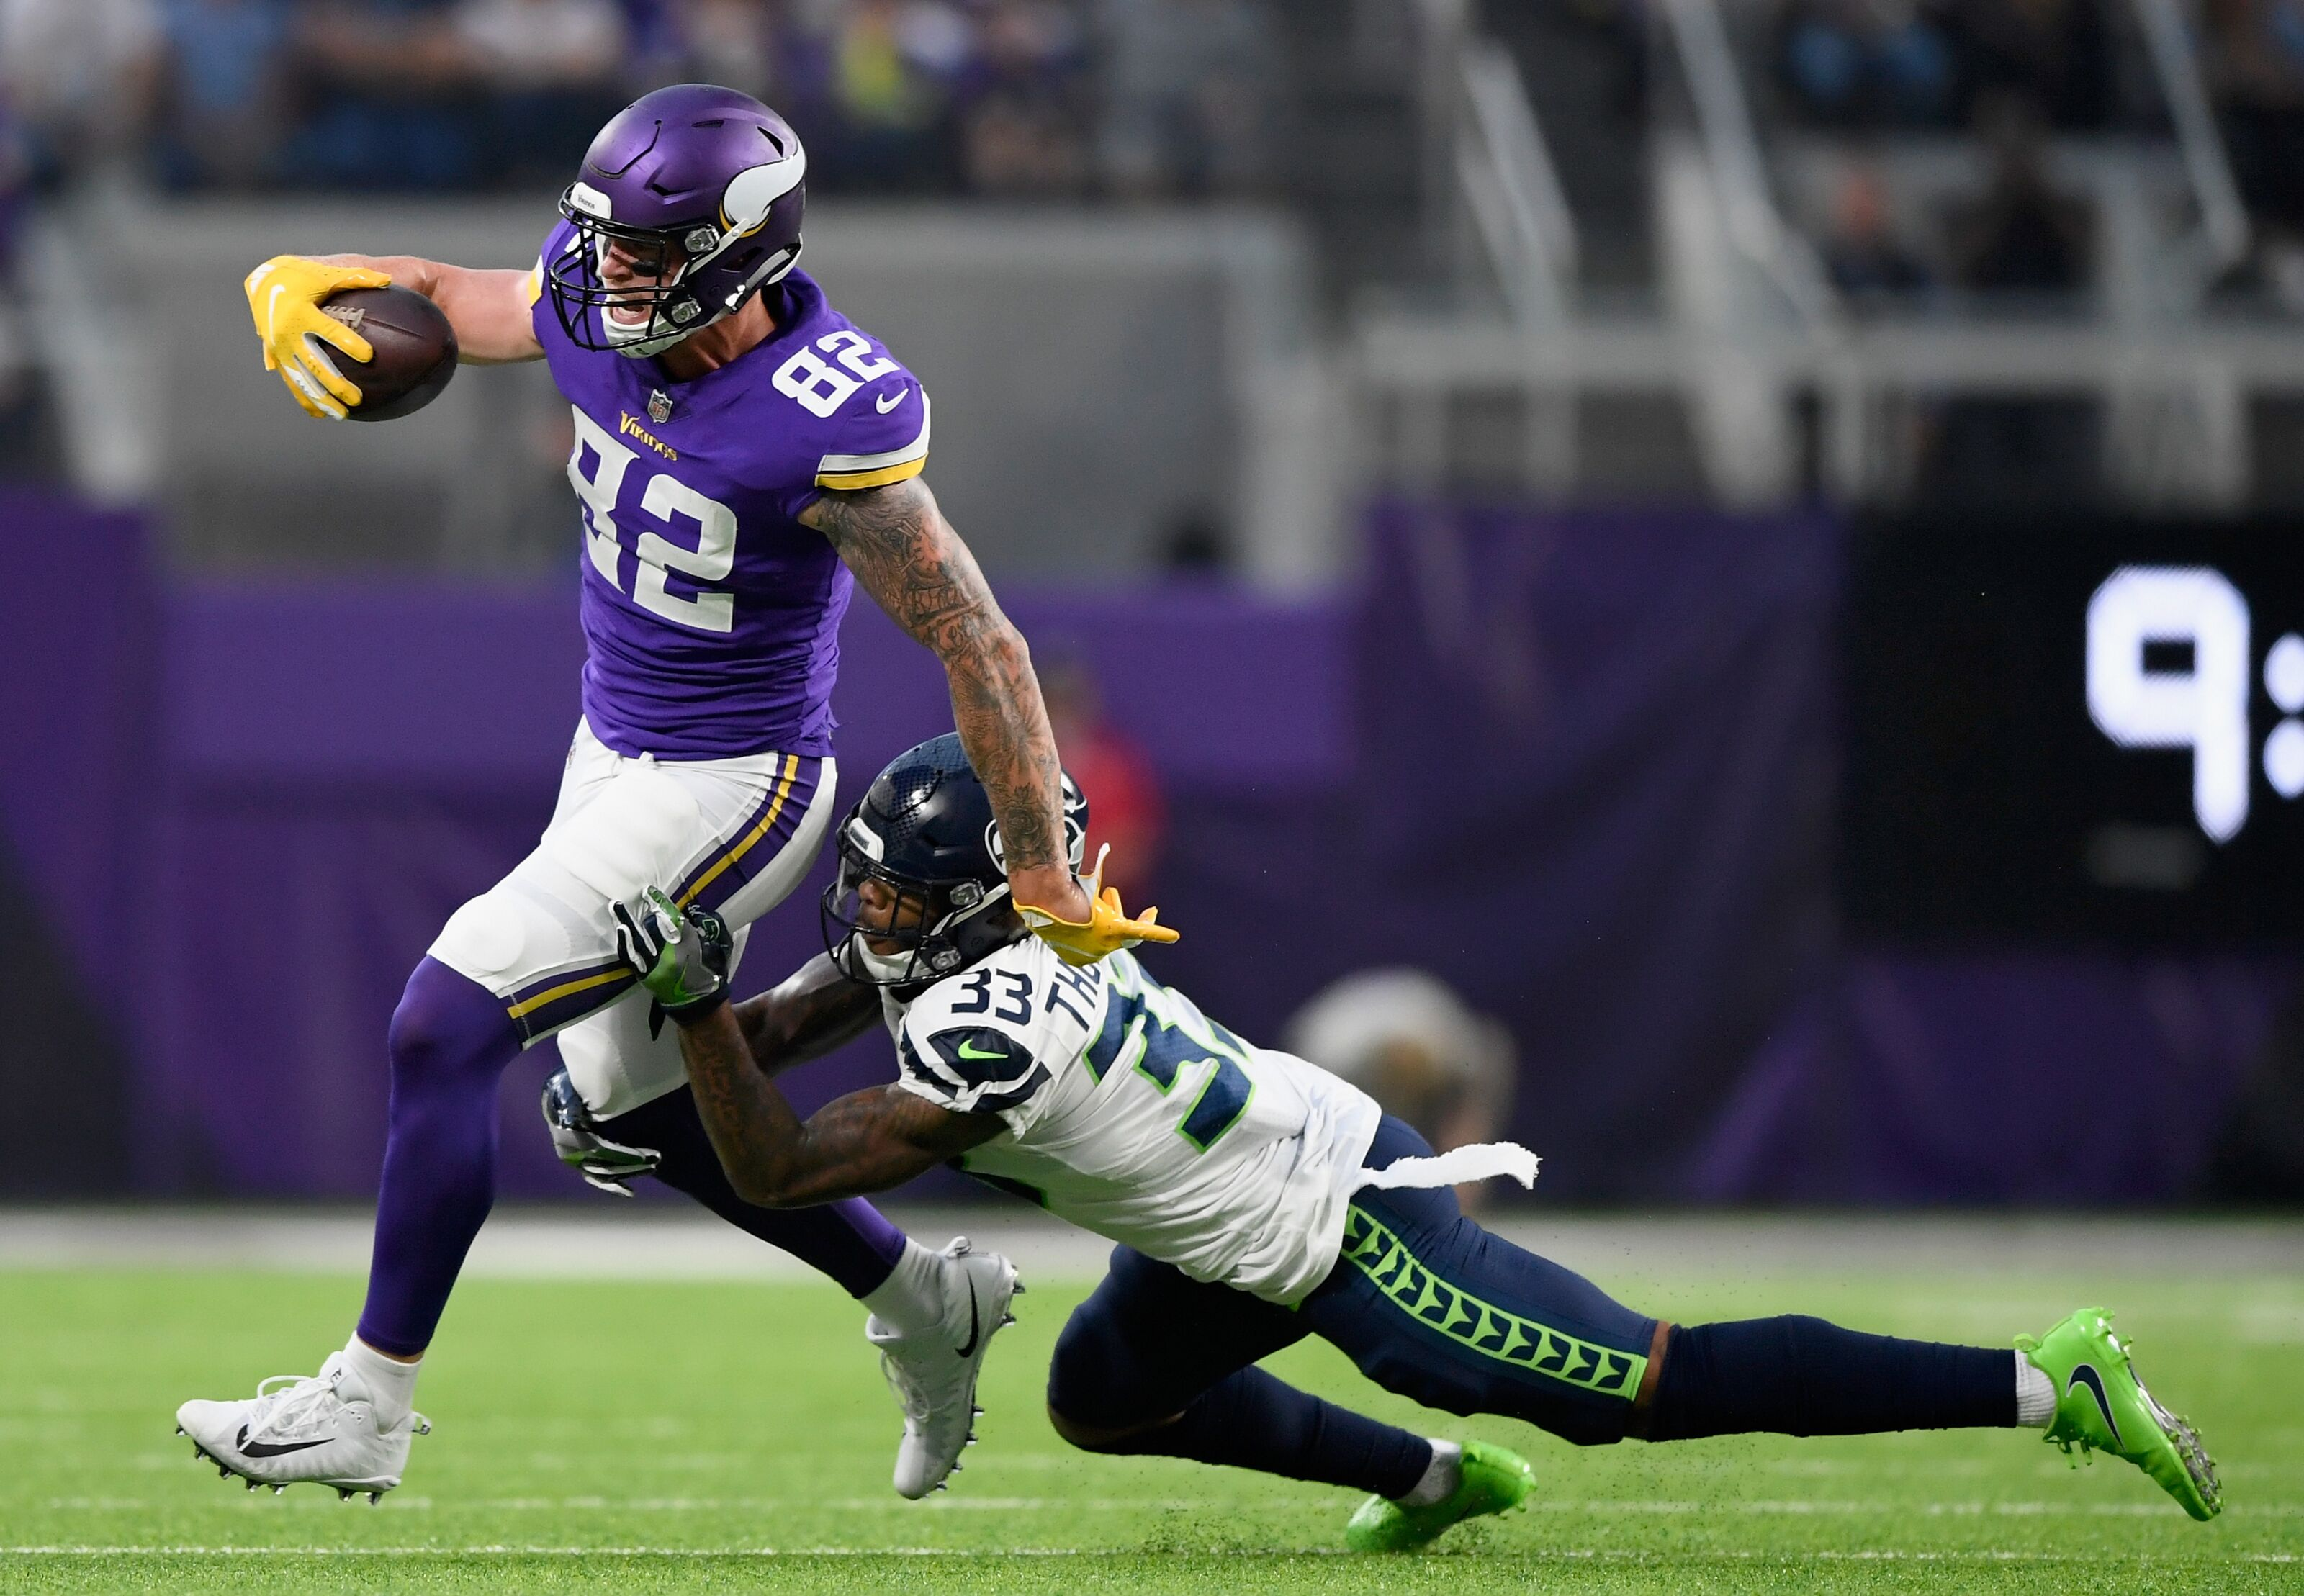 Experts think the Seahawks will beat the Minnesota Vikings in Week 14